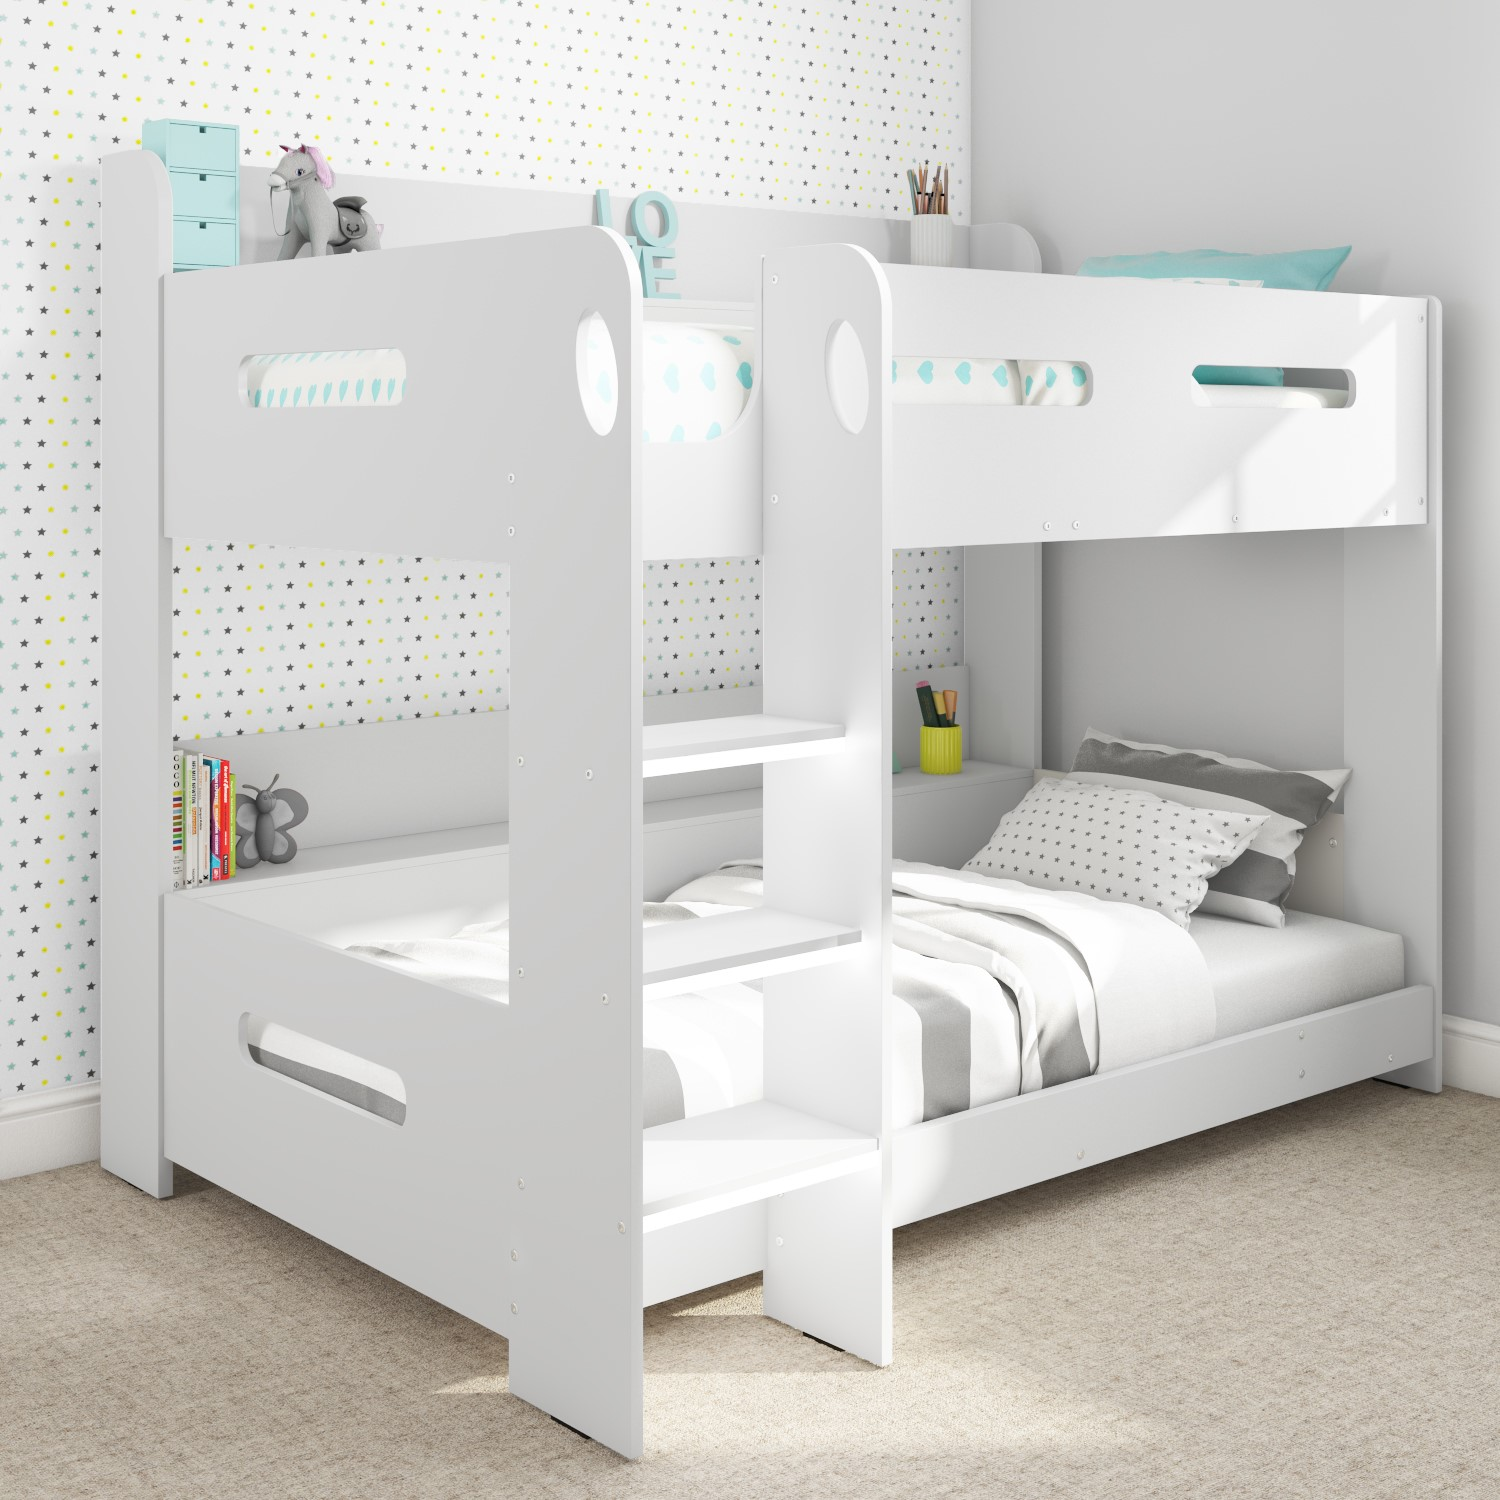 Picture of: Modern Kids White Wooden Bunk Bed Storage Shelves Ebay